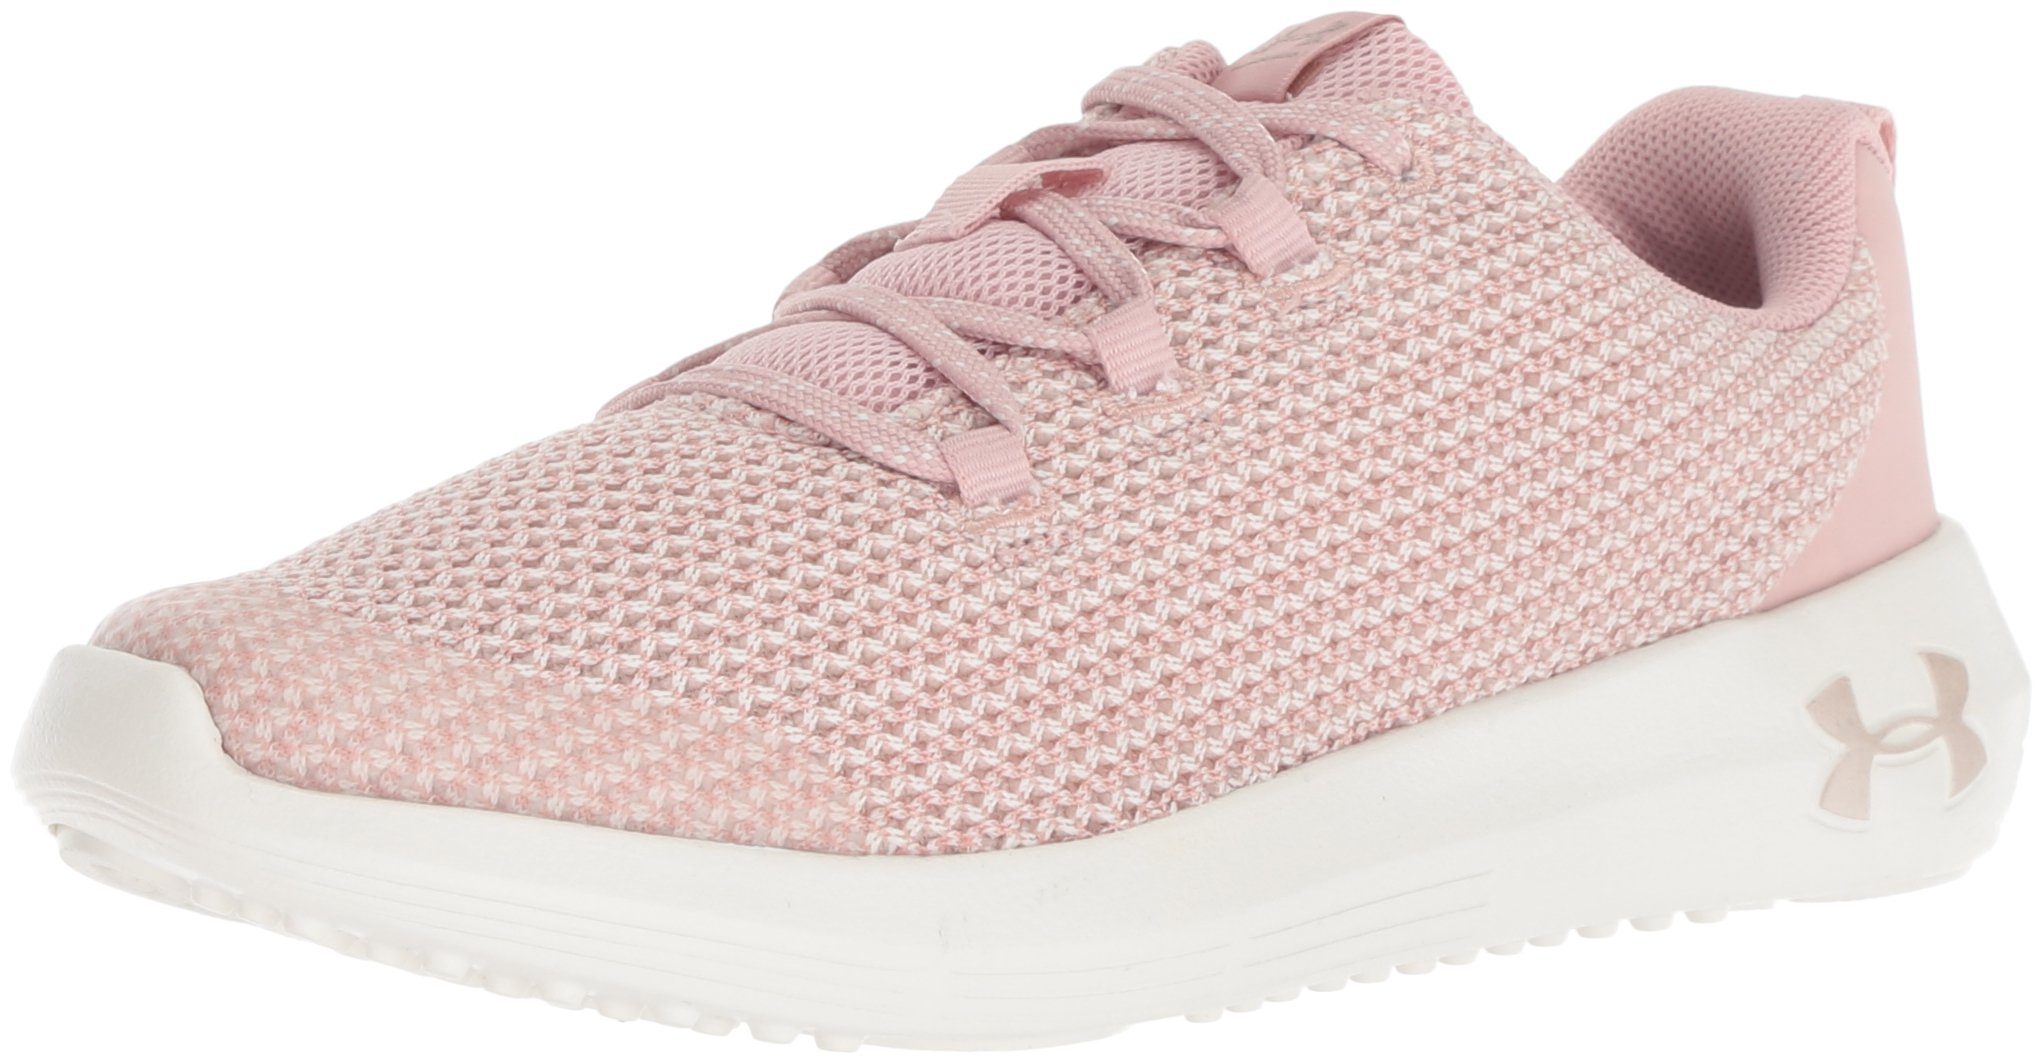 Under Armour Girls' Pre School Ripple Sneaker Flushed Pink (600)/Ivory 1